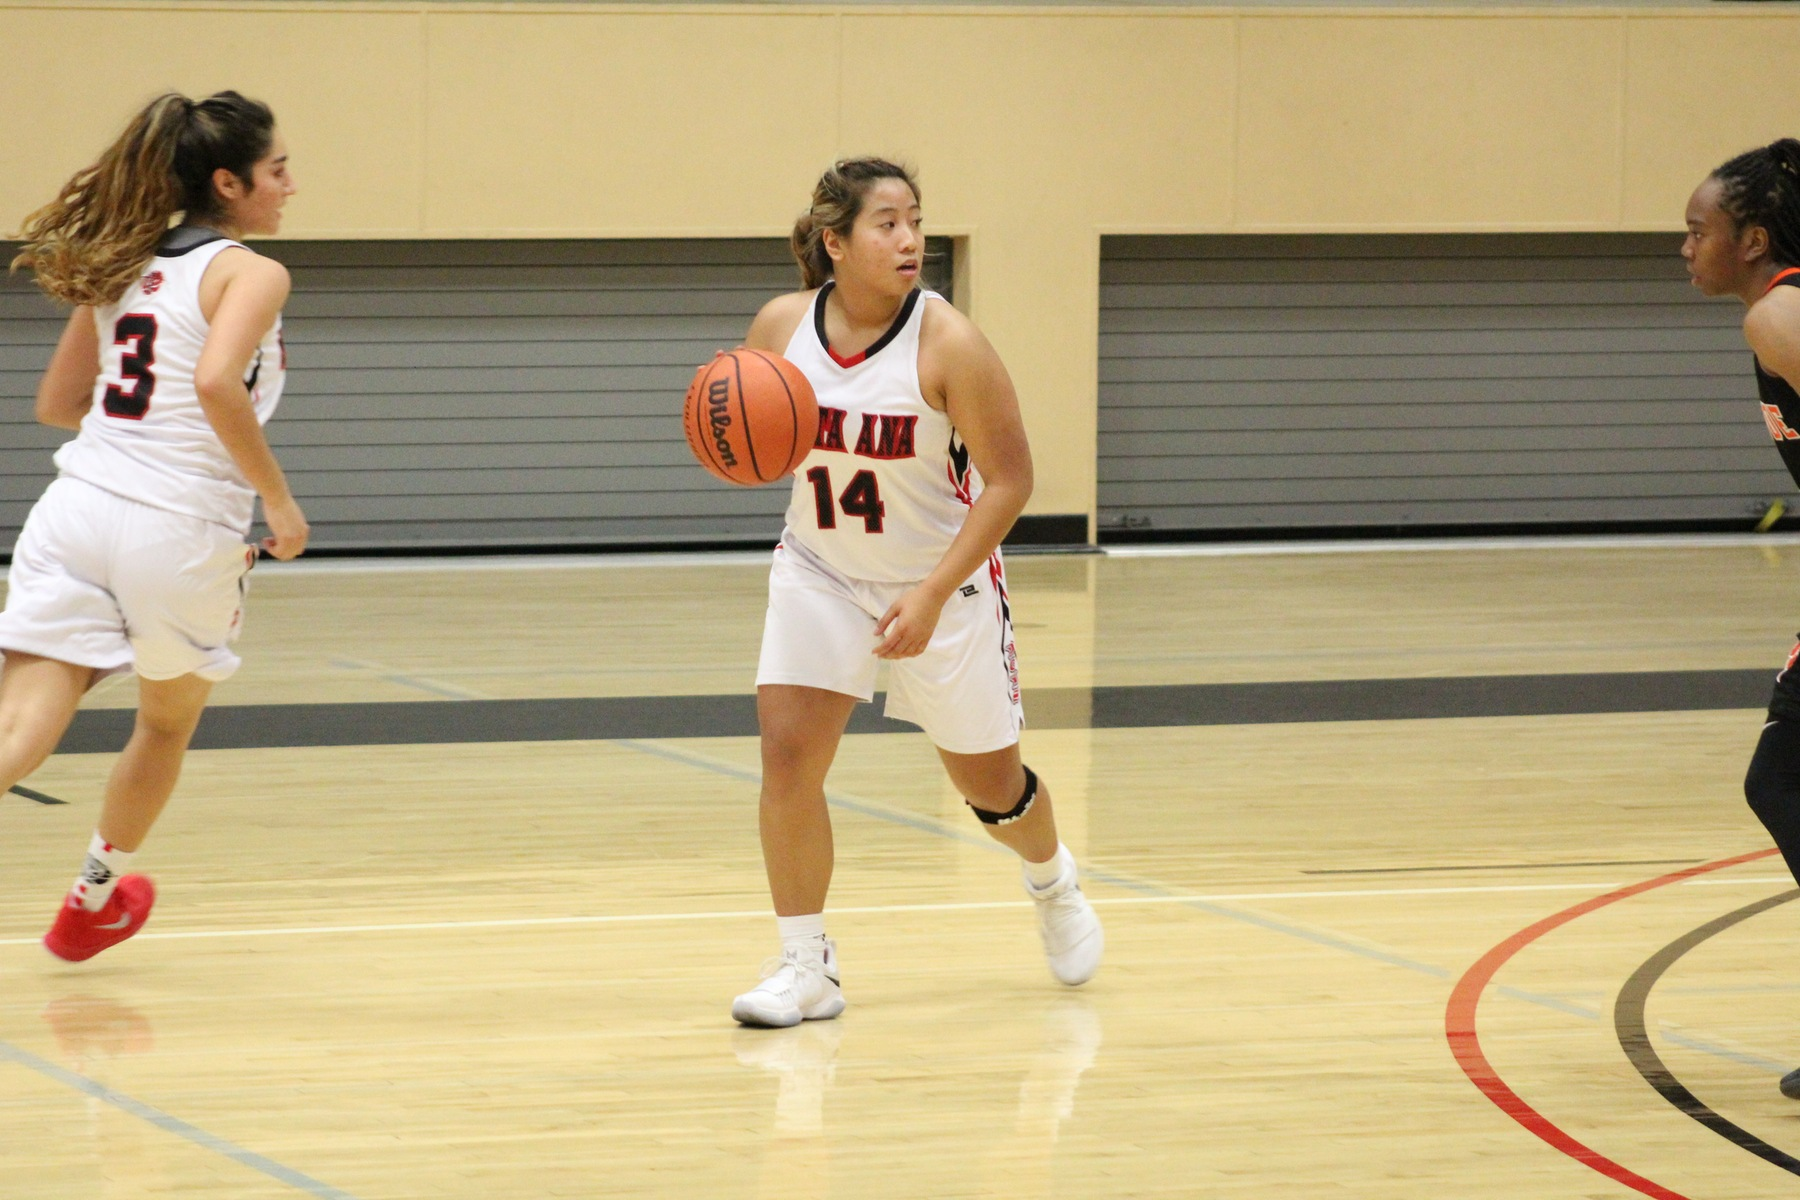 Lady Dons Fall Short of Upset Against RCC